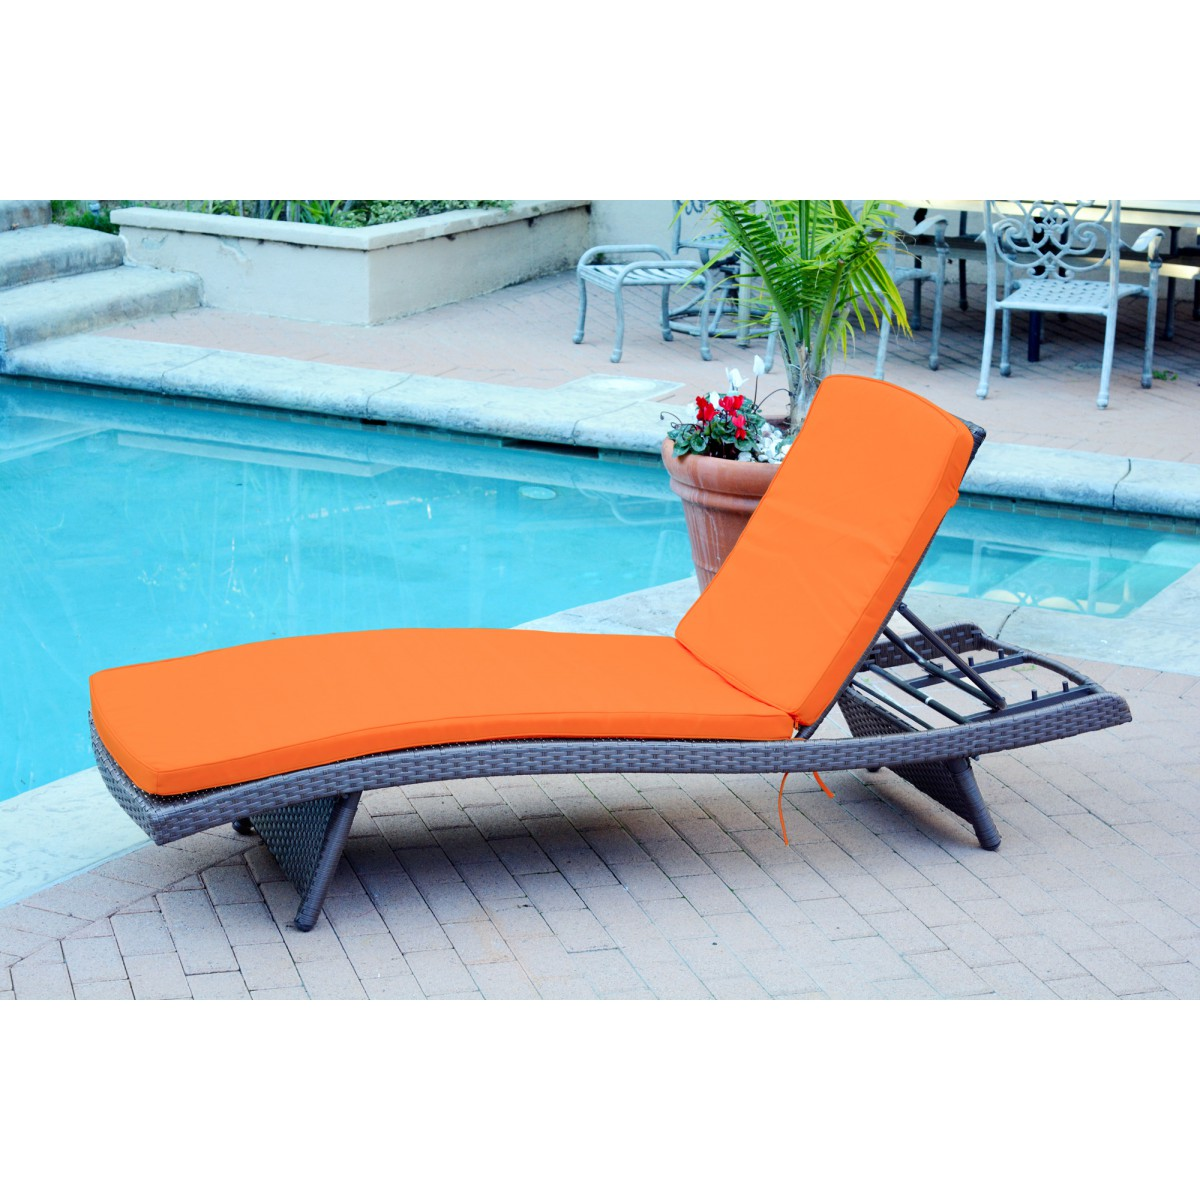 Outdoor wicker patio furniture chaise lounger with brick for Chaise orange